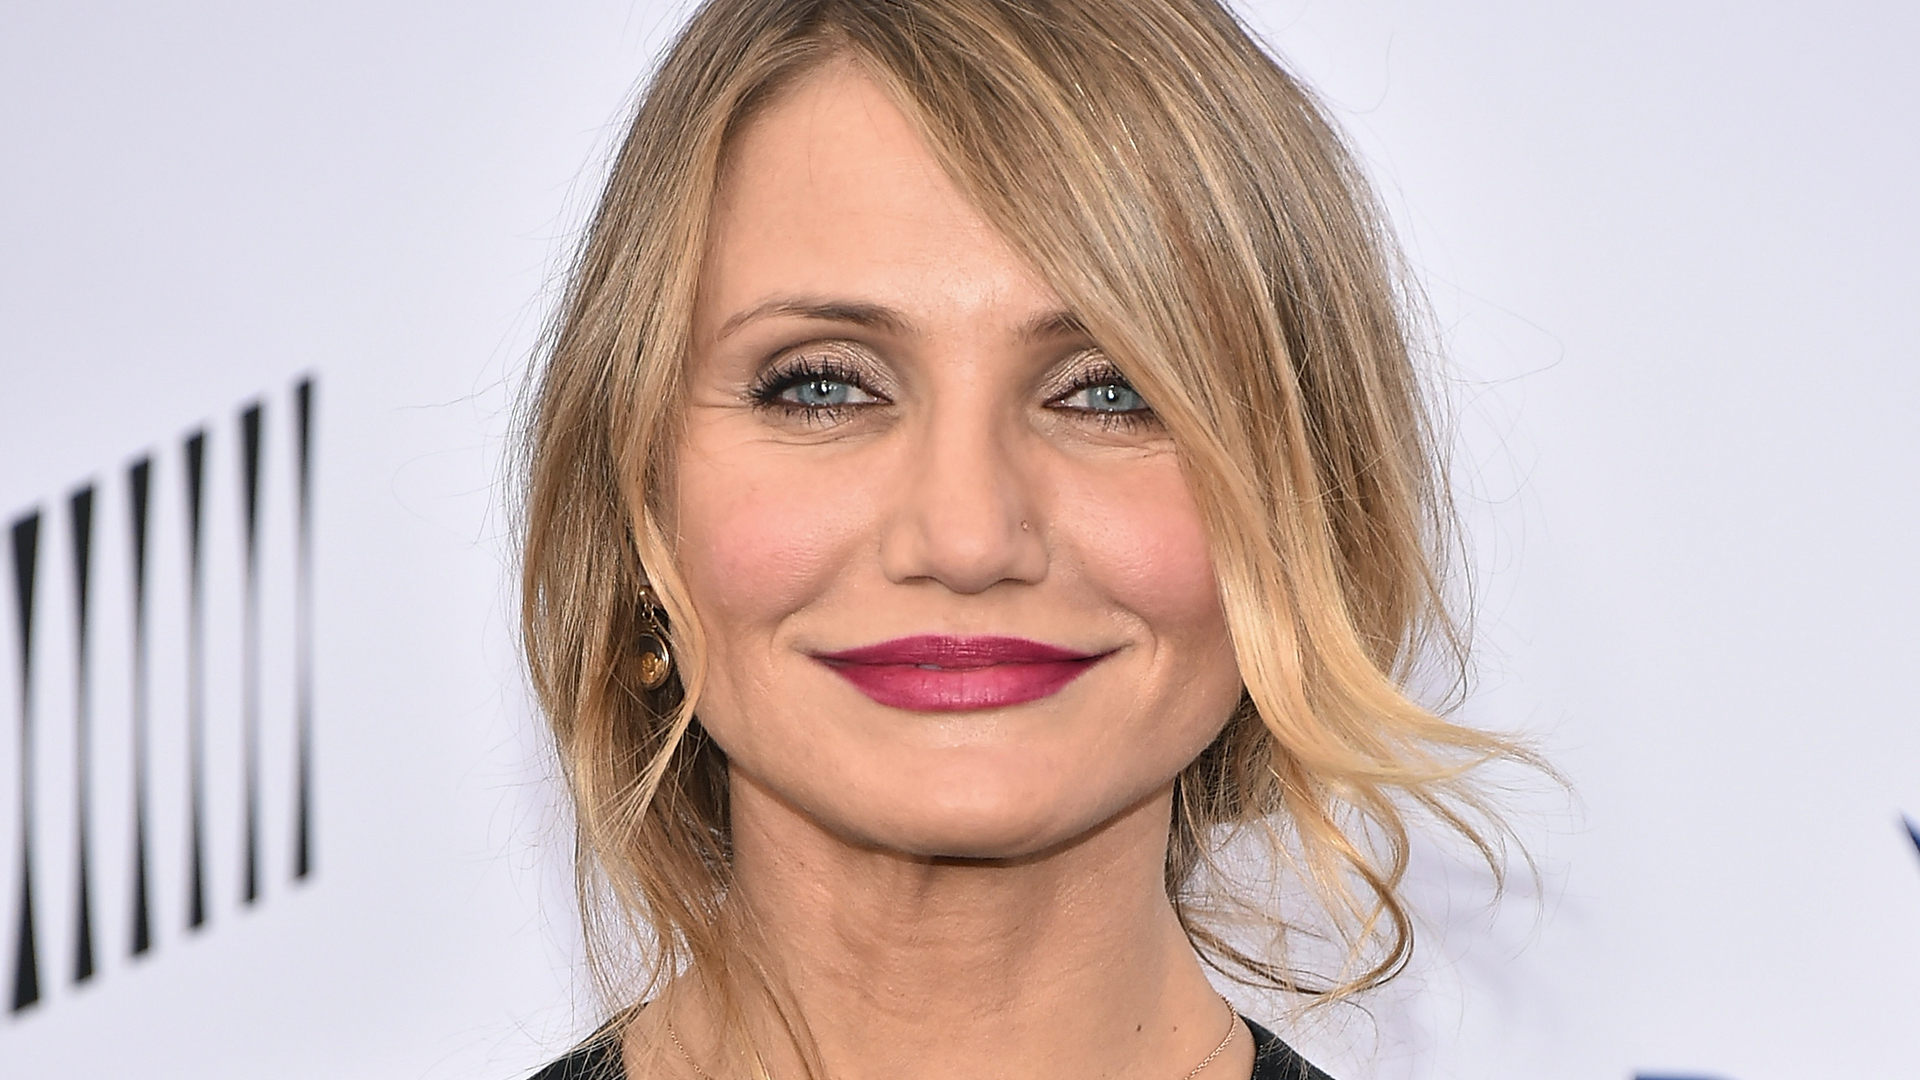 Cameron Diaz stuns in makeup-free selfie on Instagram